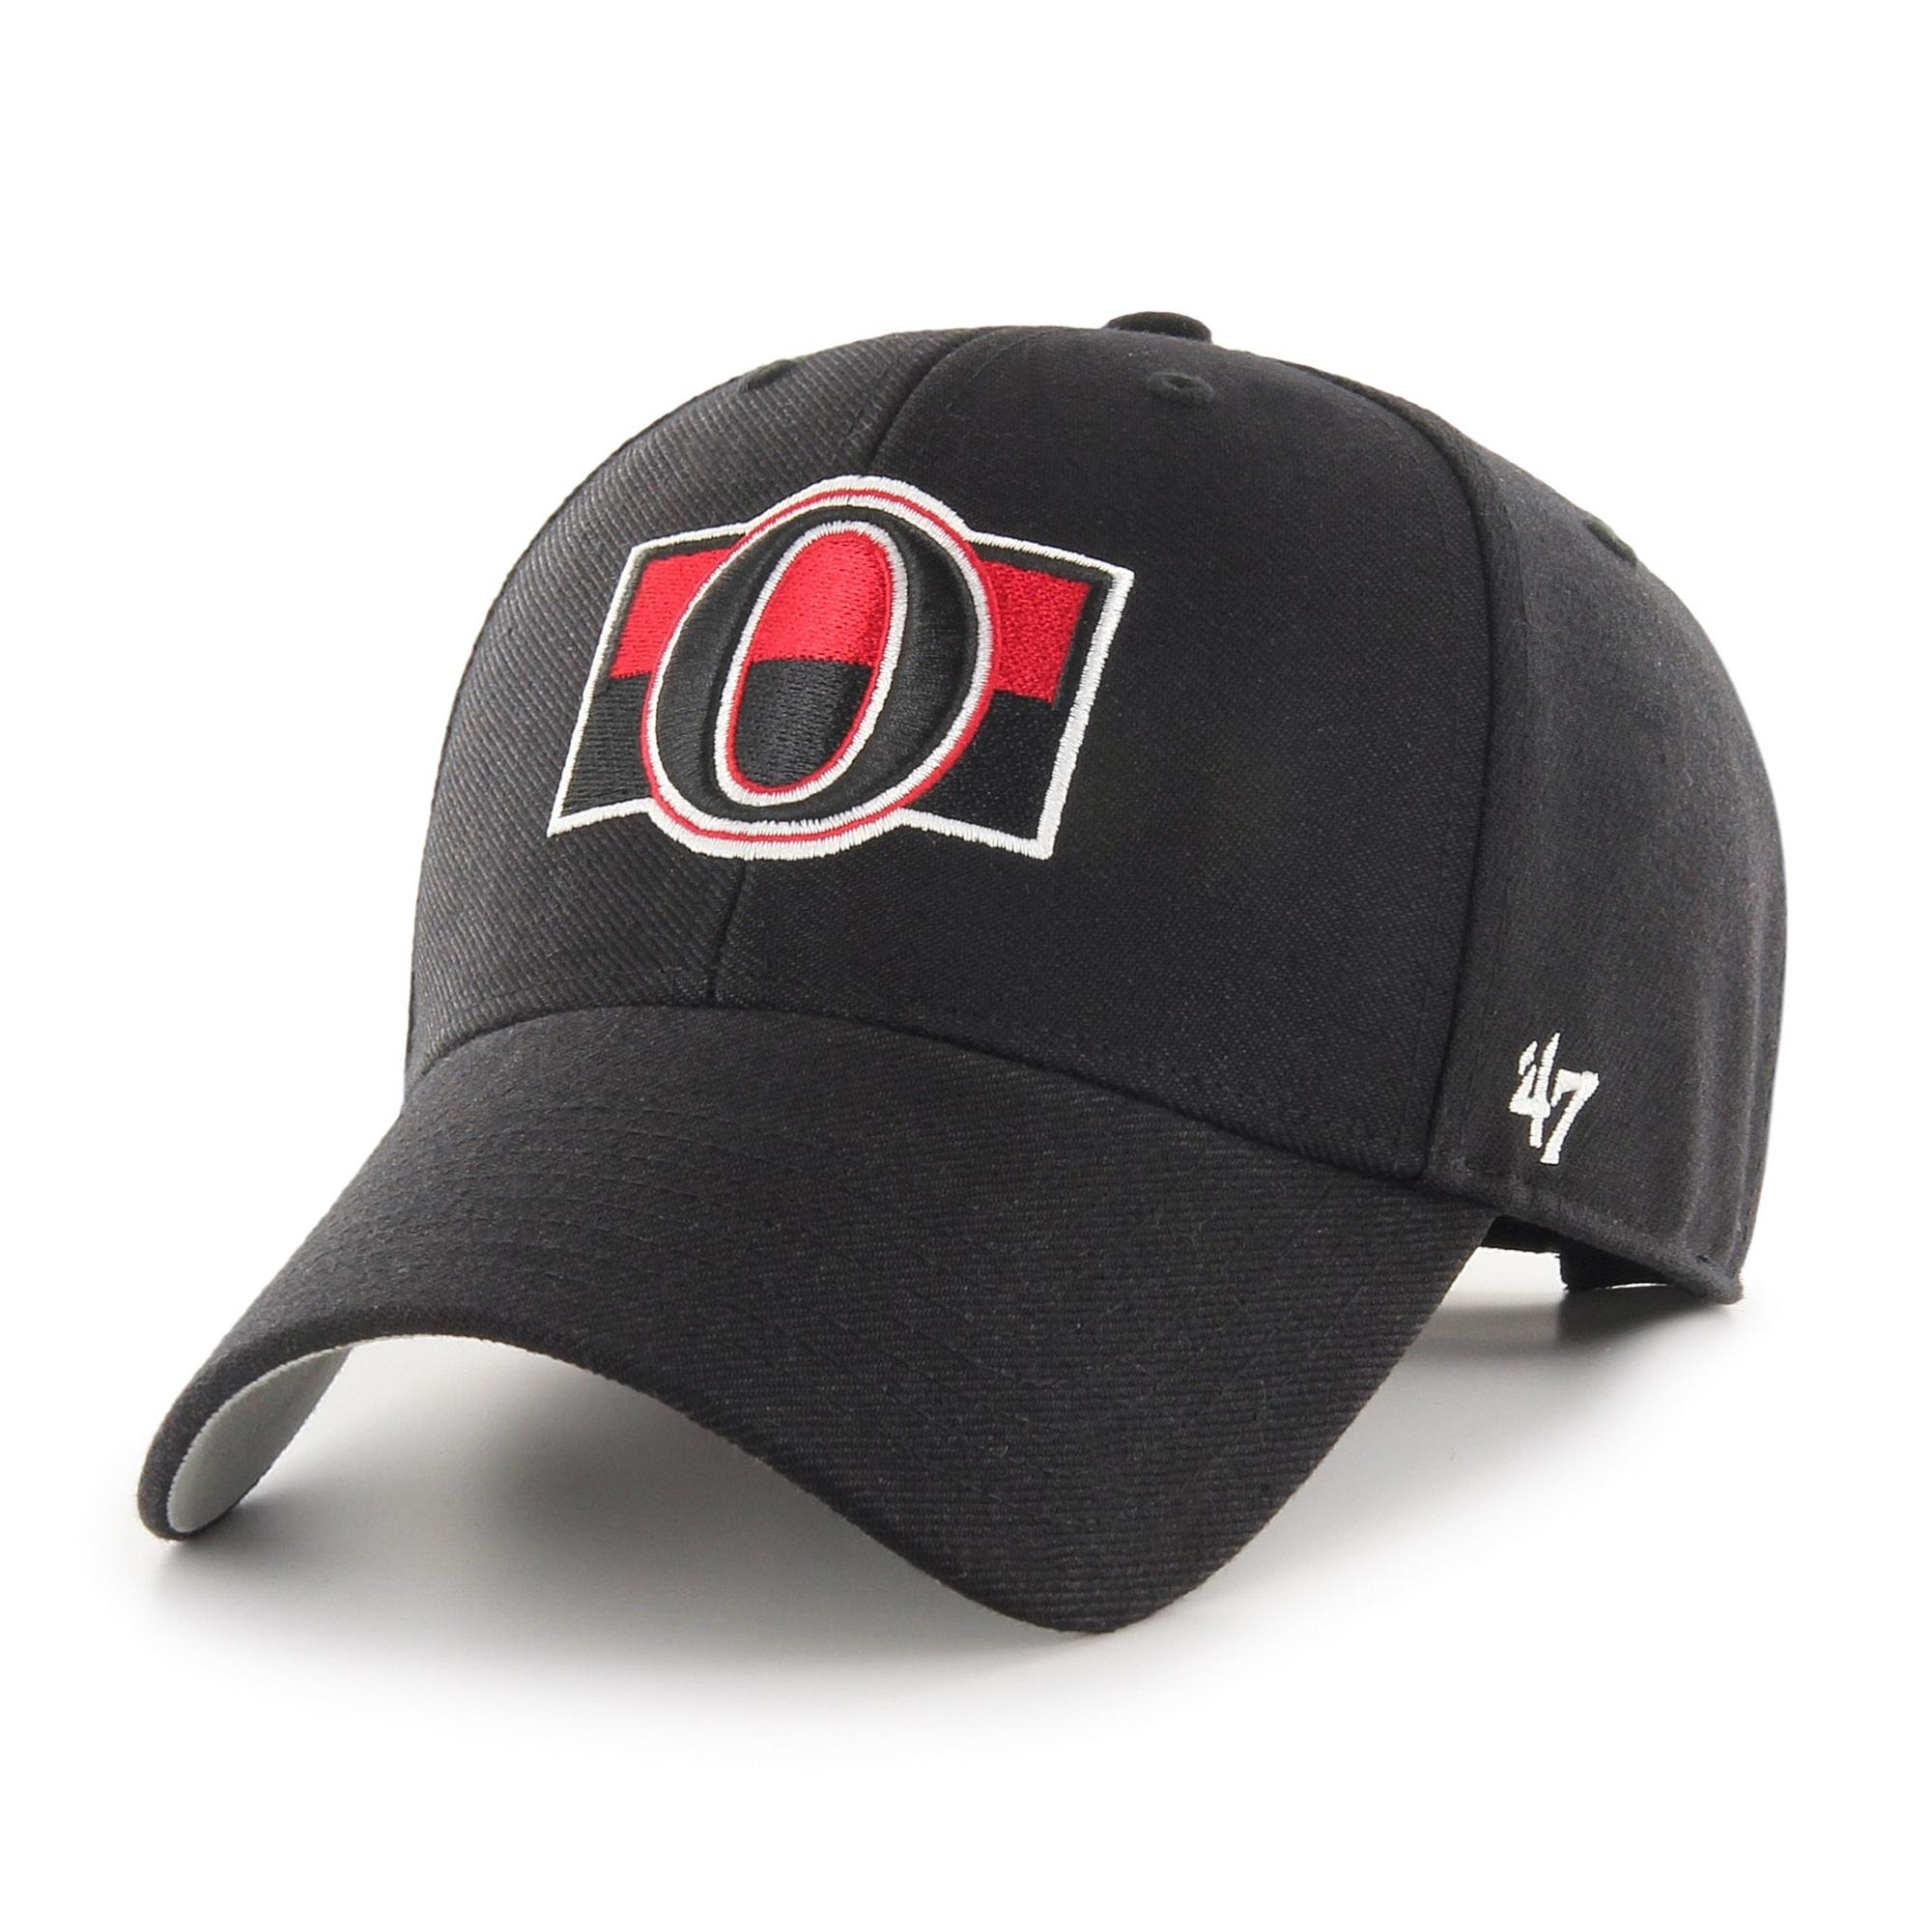 Men's Ottawa Senators Basic 47 MVP Cap